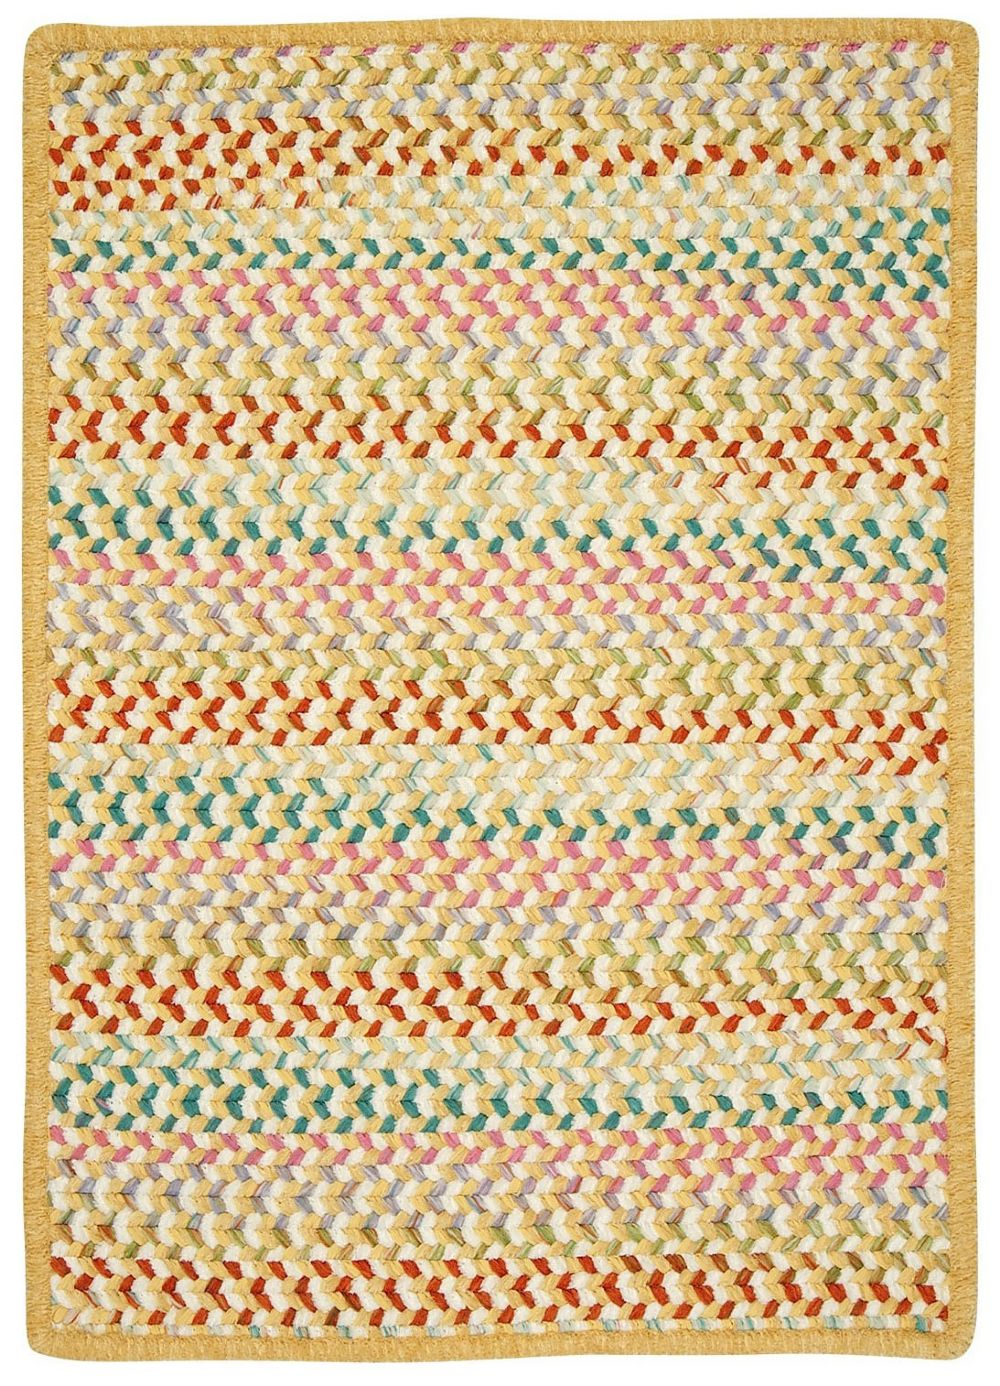 colonial mills color frenzy braided area rug collection